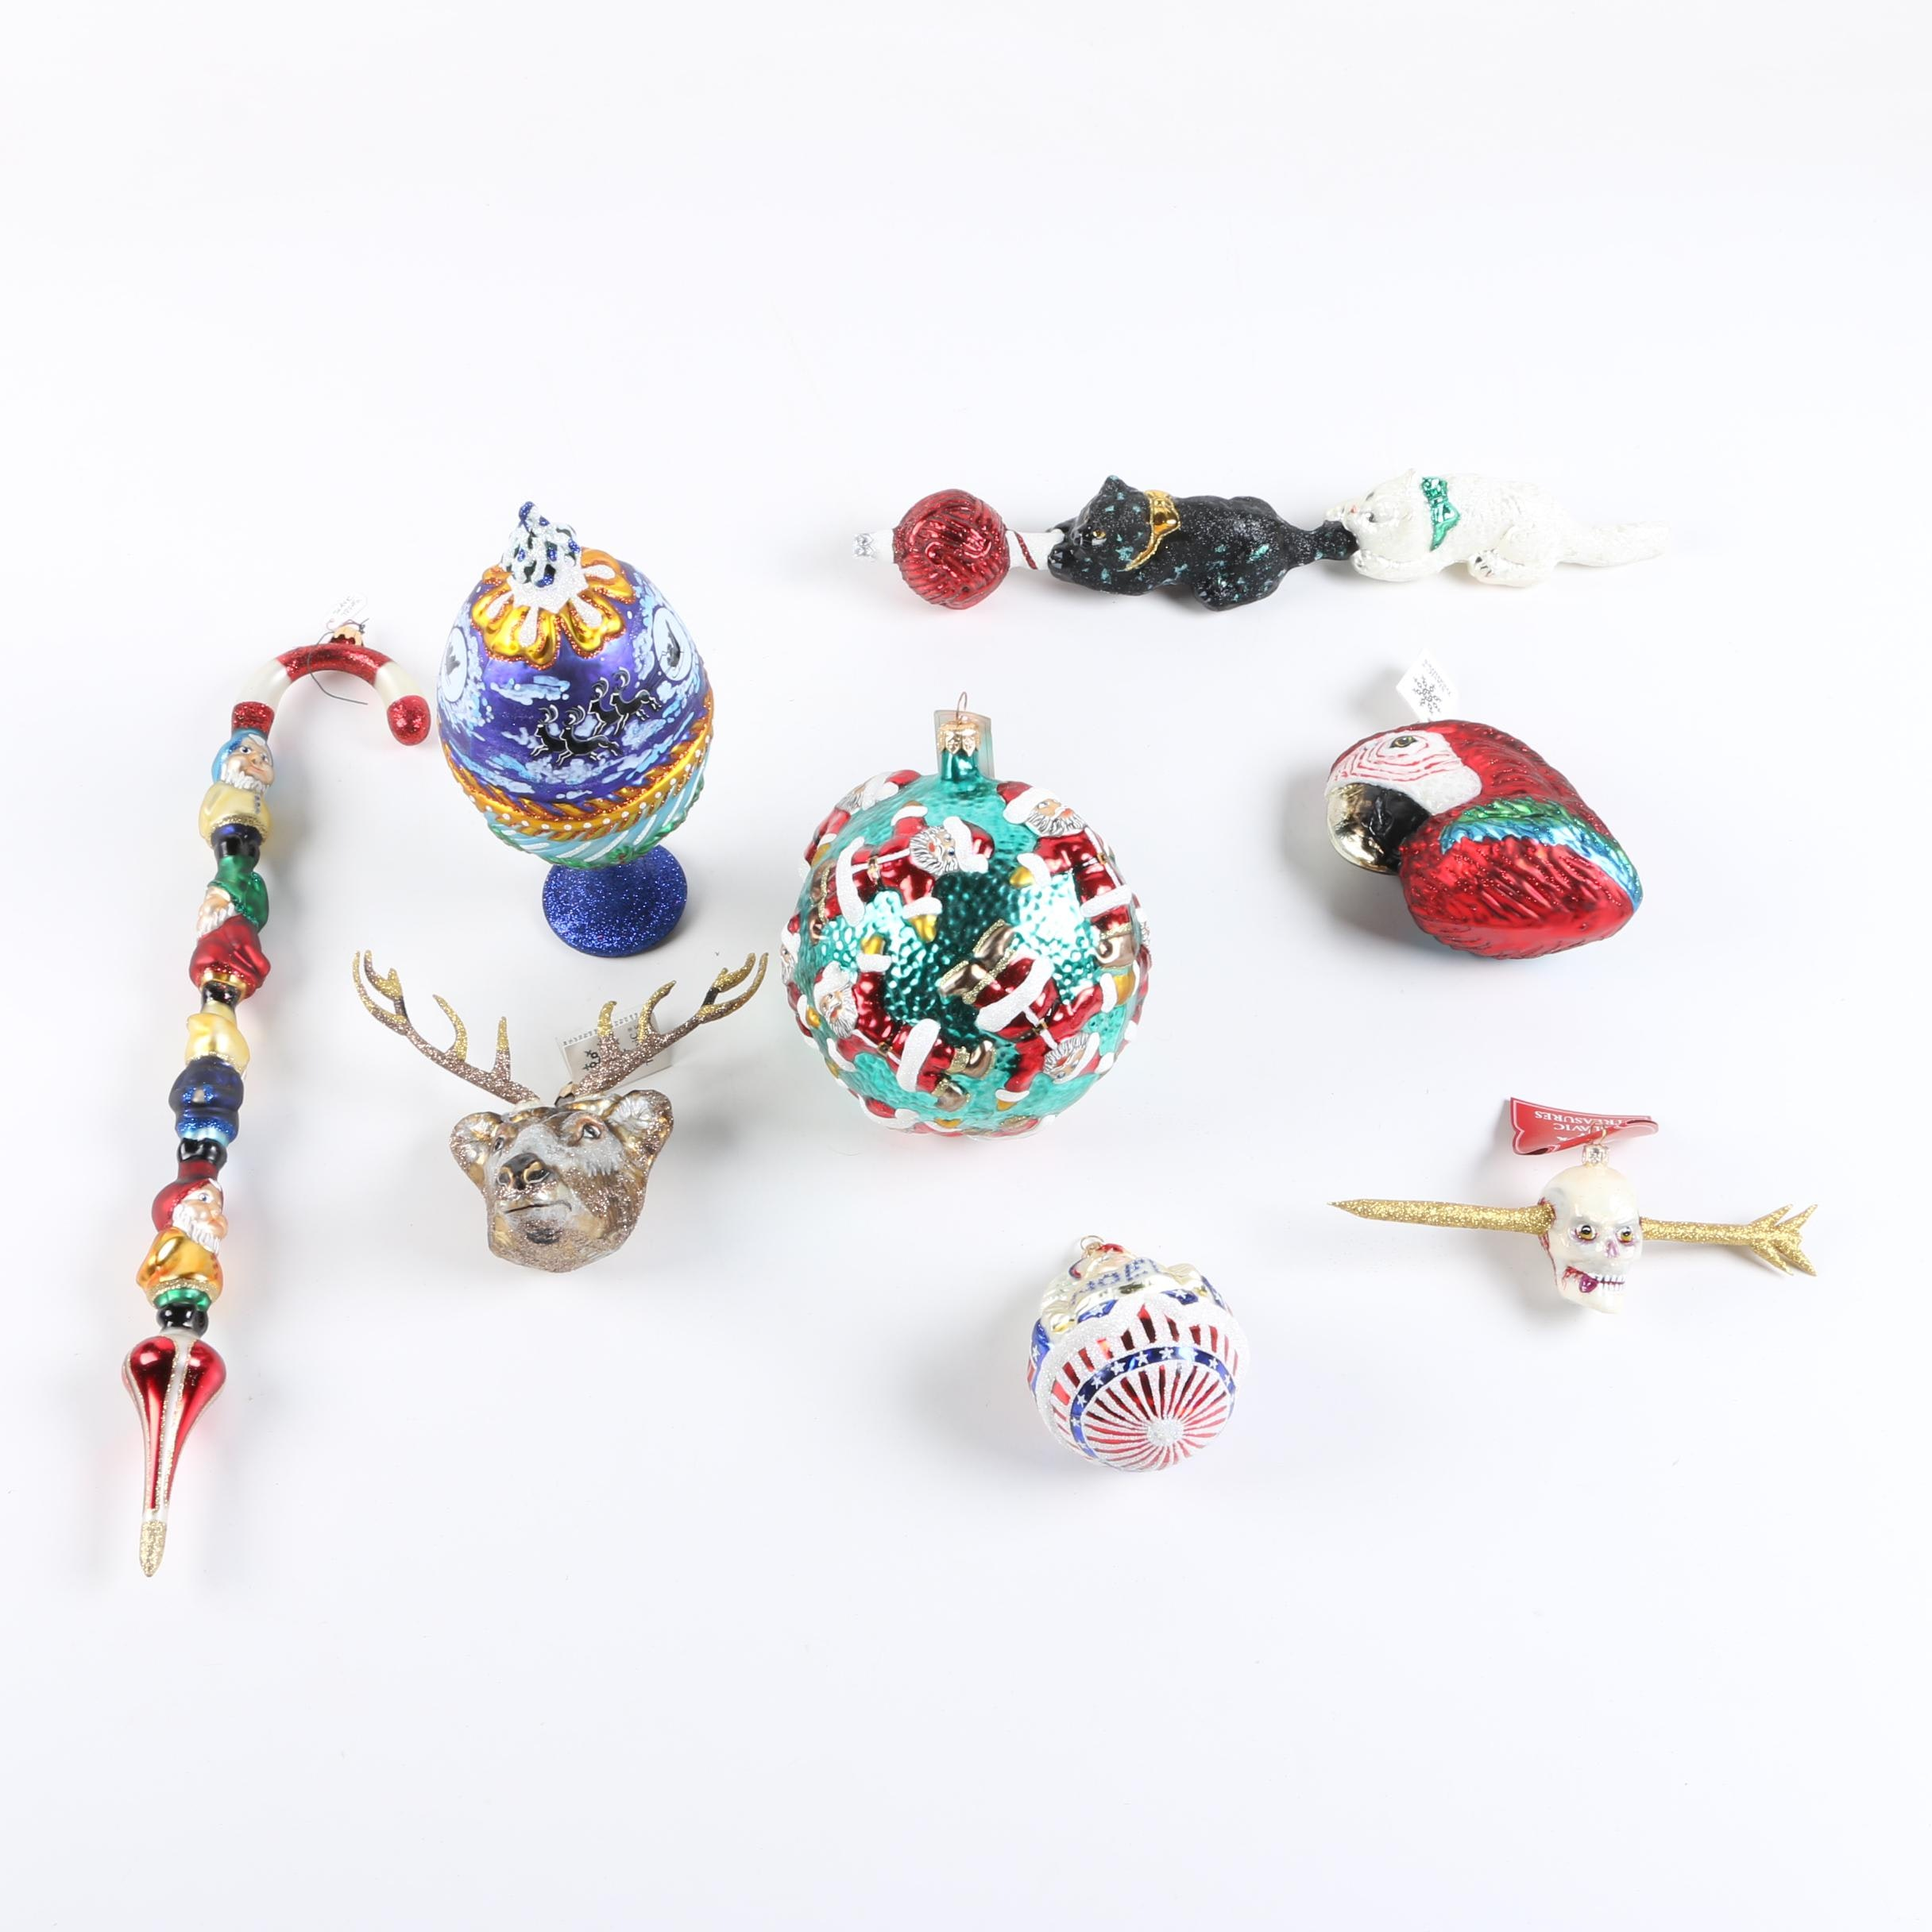 Slavic Treasures Blown Glass Ornaments and Decor